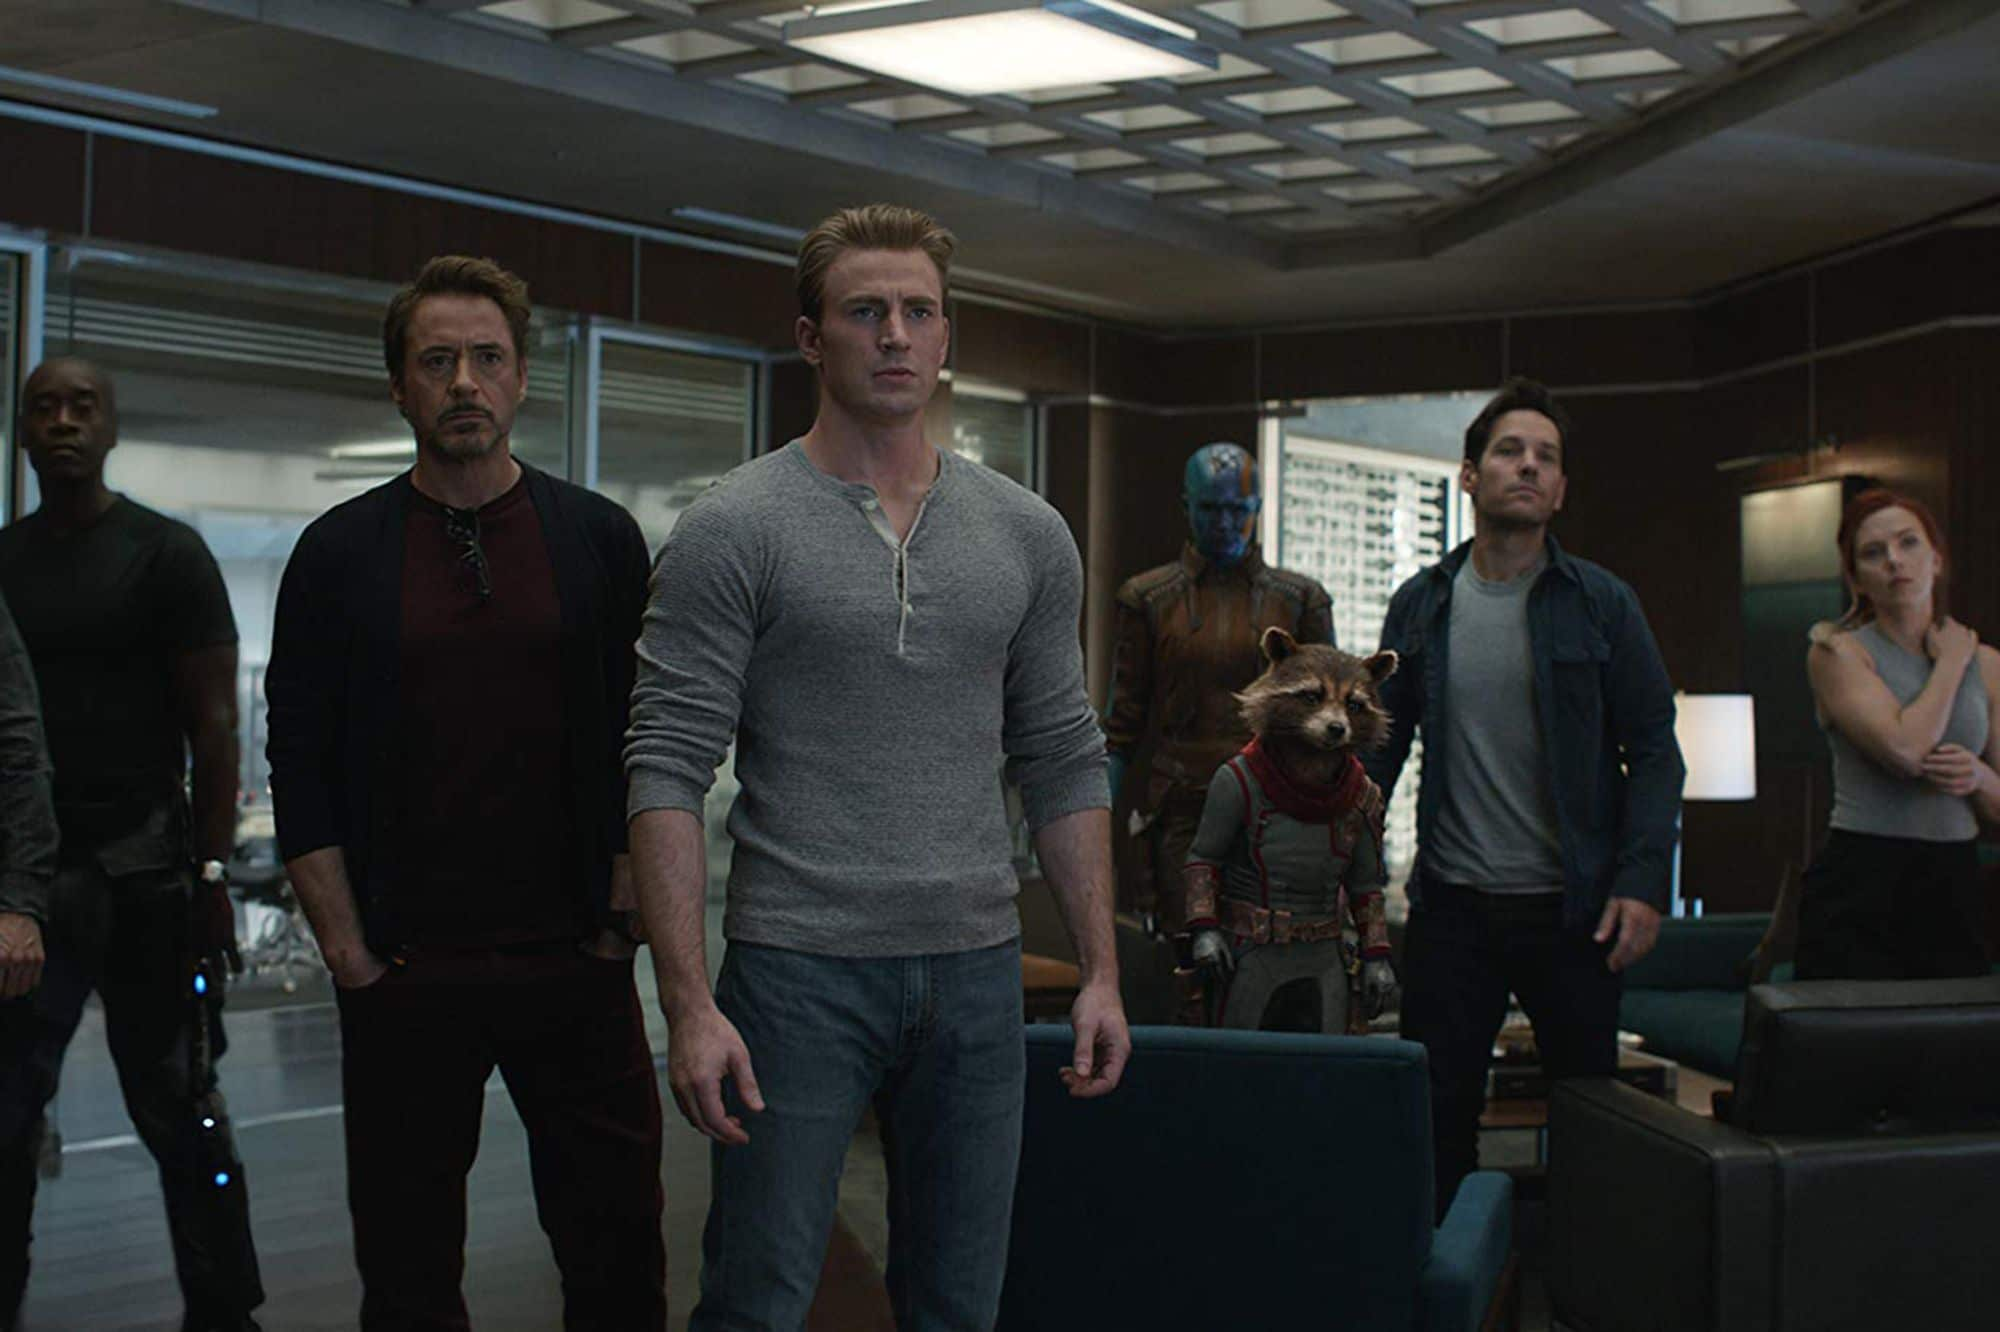 Avengers : Endgame : Iron Patriot, Iron Man, Captain America, Nebula, Rocket Racoon, Ant-Man, Black Widow